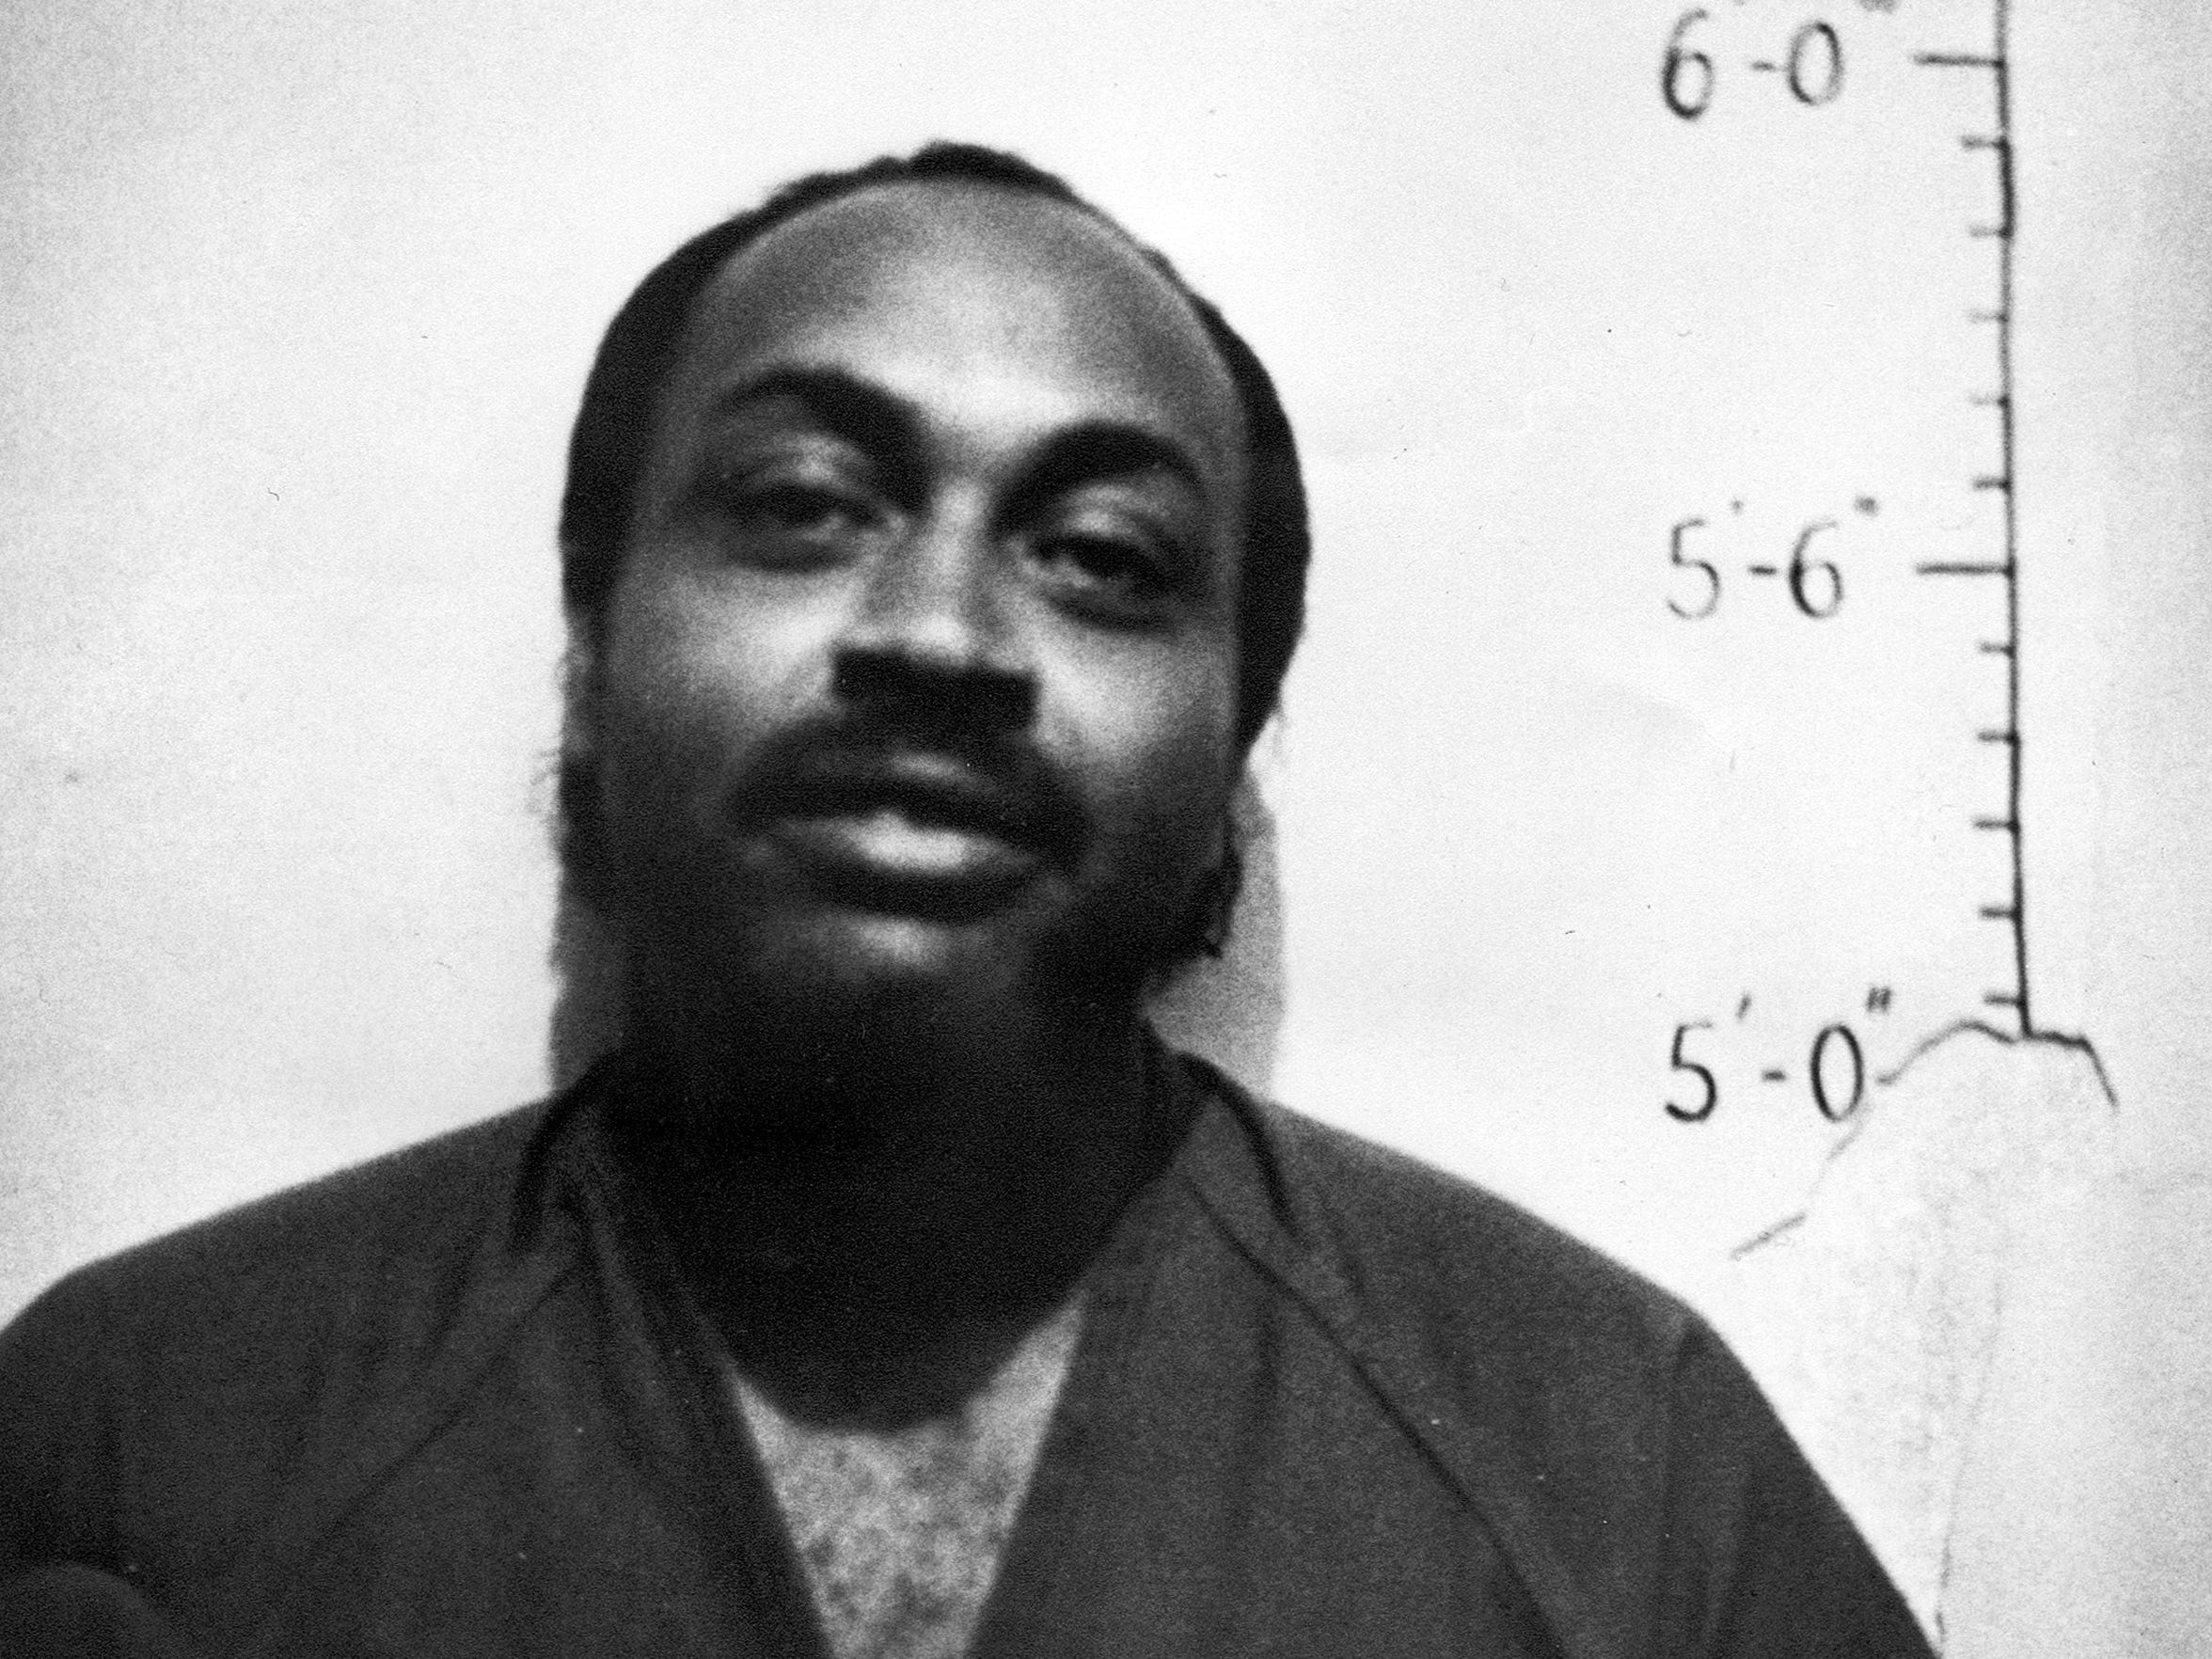 William Virgil was 35 years old when charged in the April 1987 death of Newport resident Retha Welch. Virgil was convicted by a jury in 1988 and sentenced to 70 years in prison. His conviction was overturned in 2015. No one else has been charged in Welch's death.